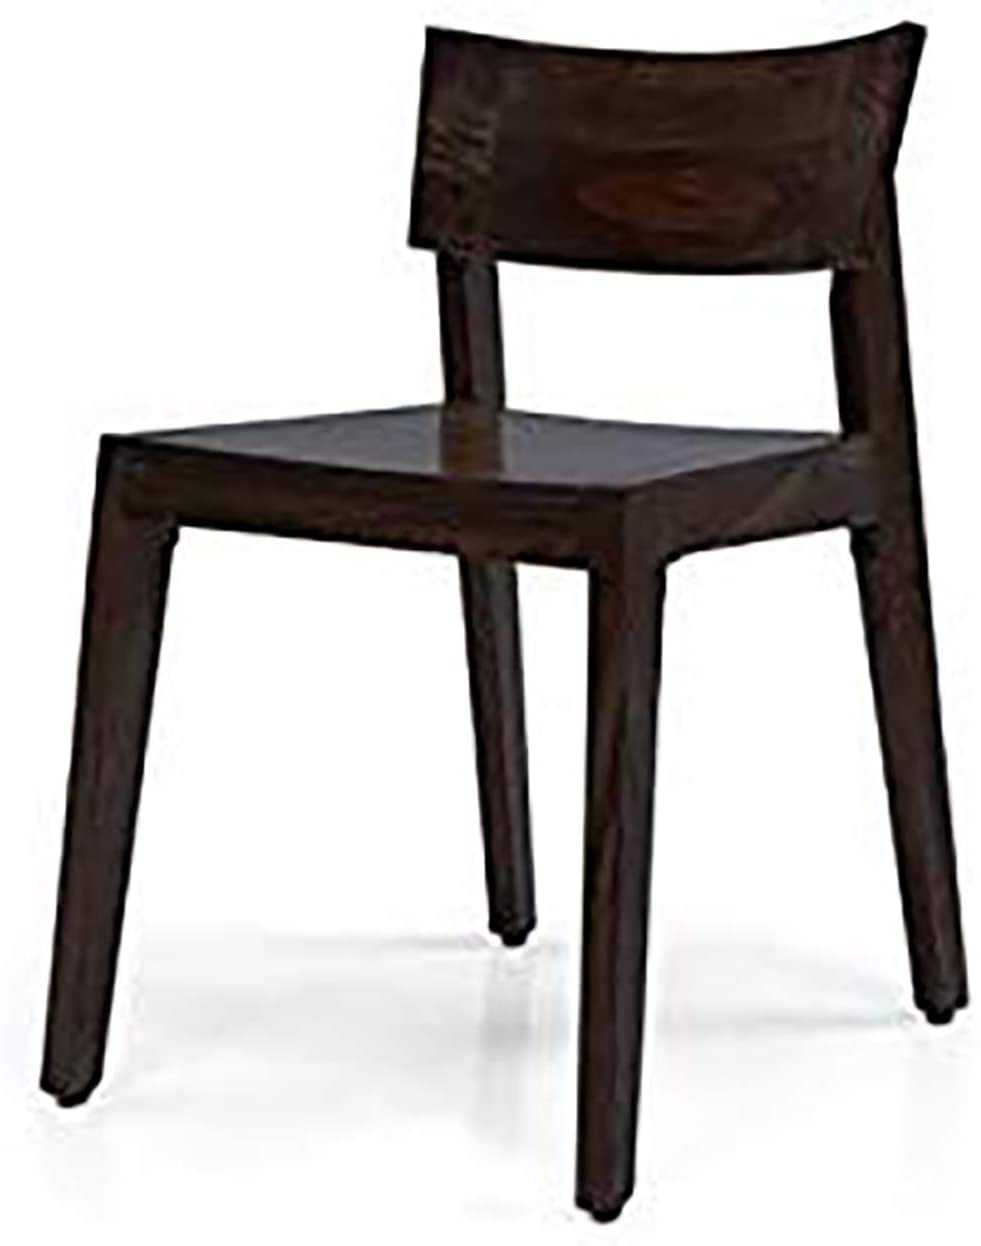 Boger sheesham wood study  chair for home (Black Oak Finish)